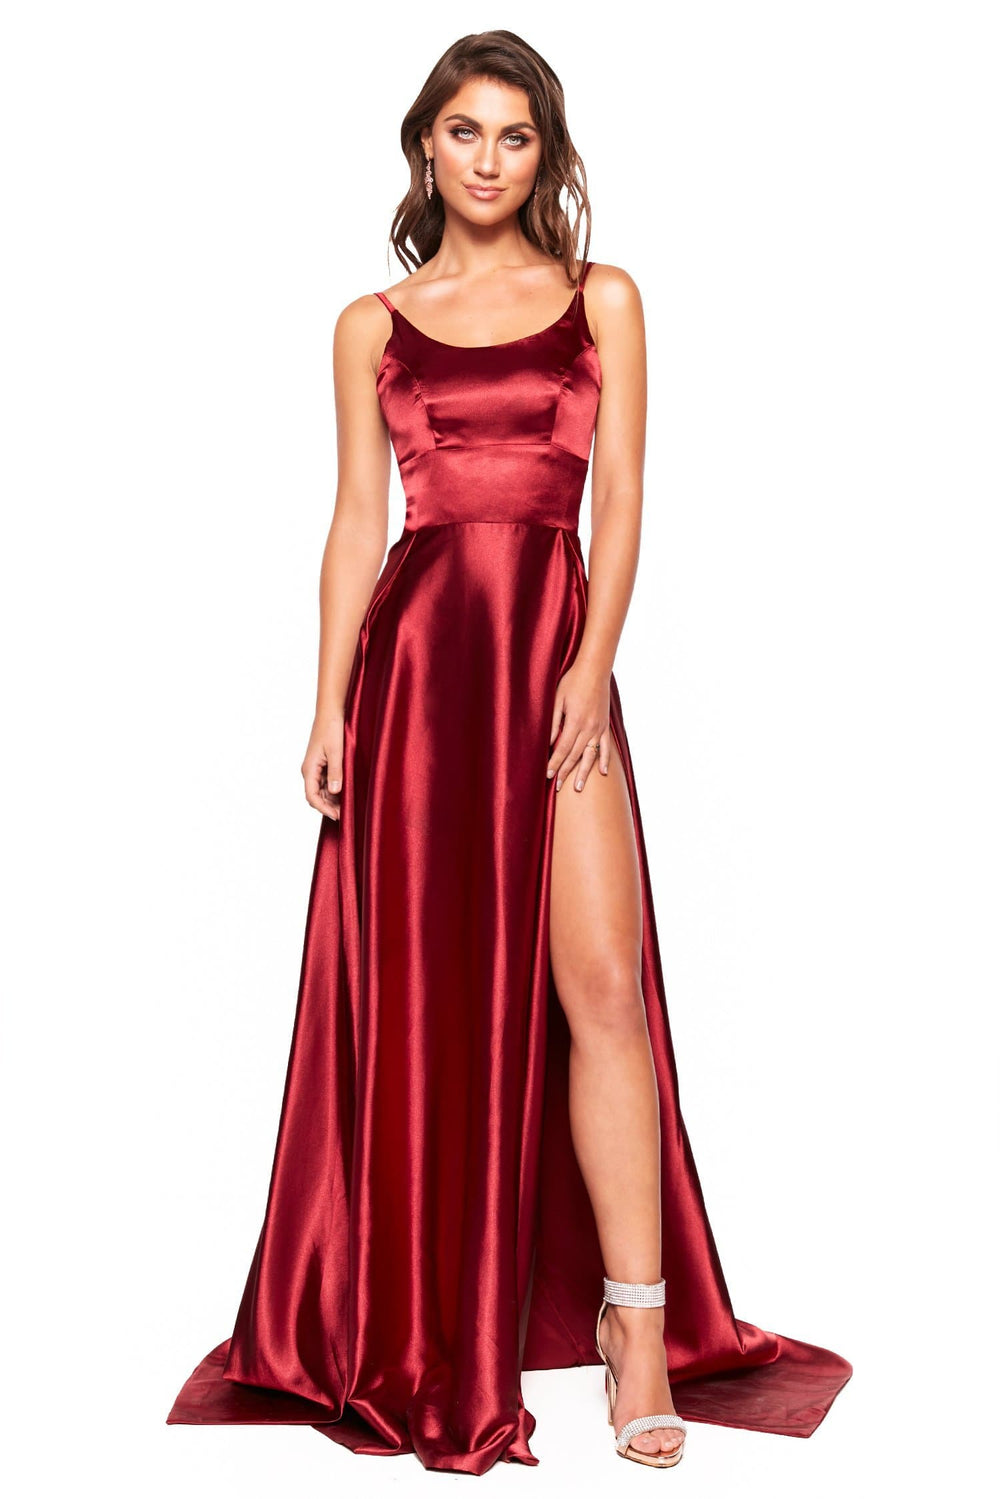 A&N Luxe Vanessa - Burgundy Satin Gown With Scoop Neck and Slit